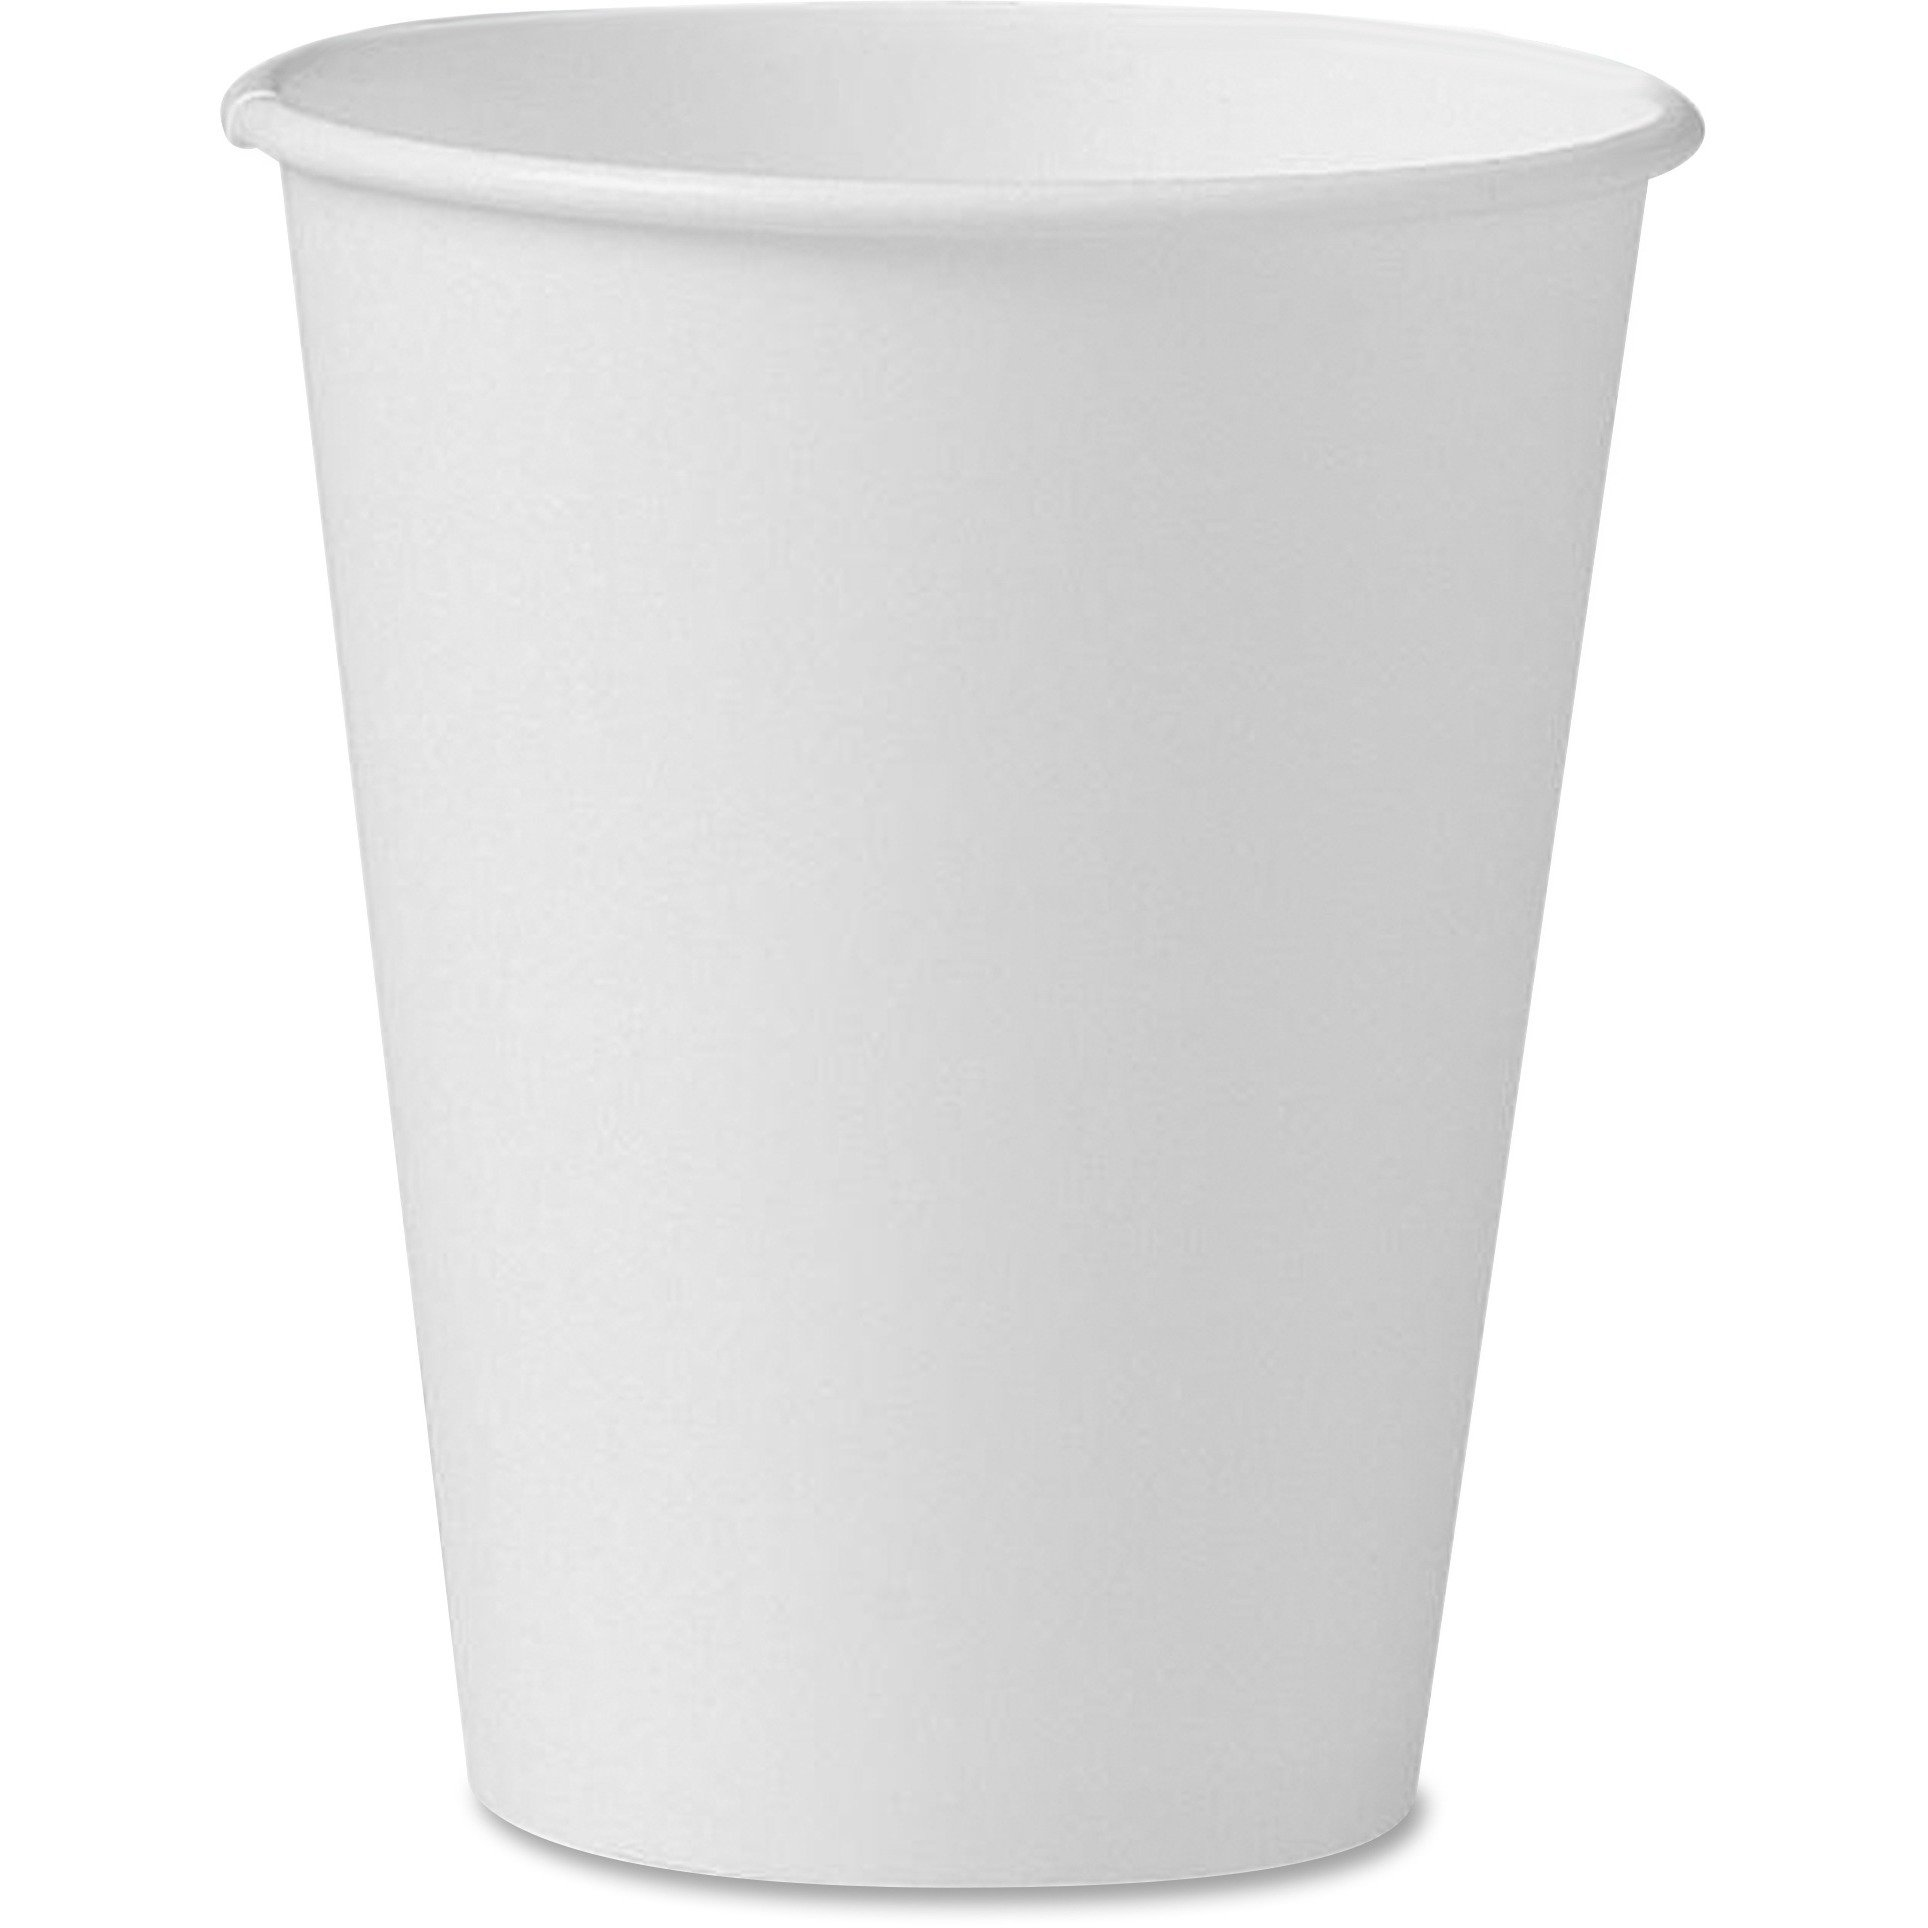 SOLO 378W2050 Single-Sided Poly Paper Hot Cups, 8oz, White, 50/Bag, 20 Bags/Carton